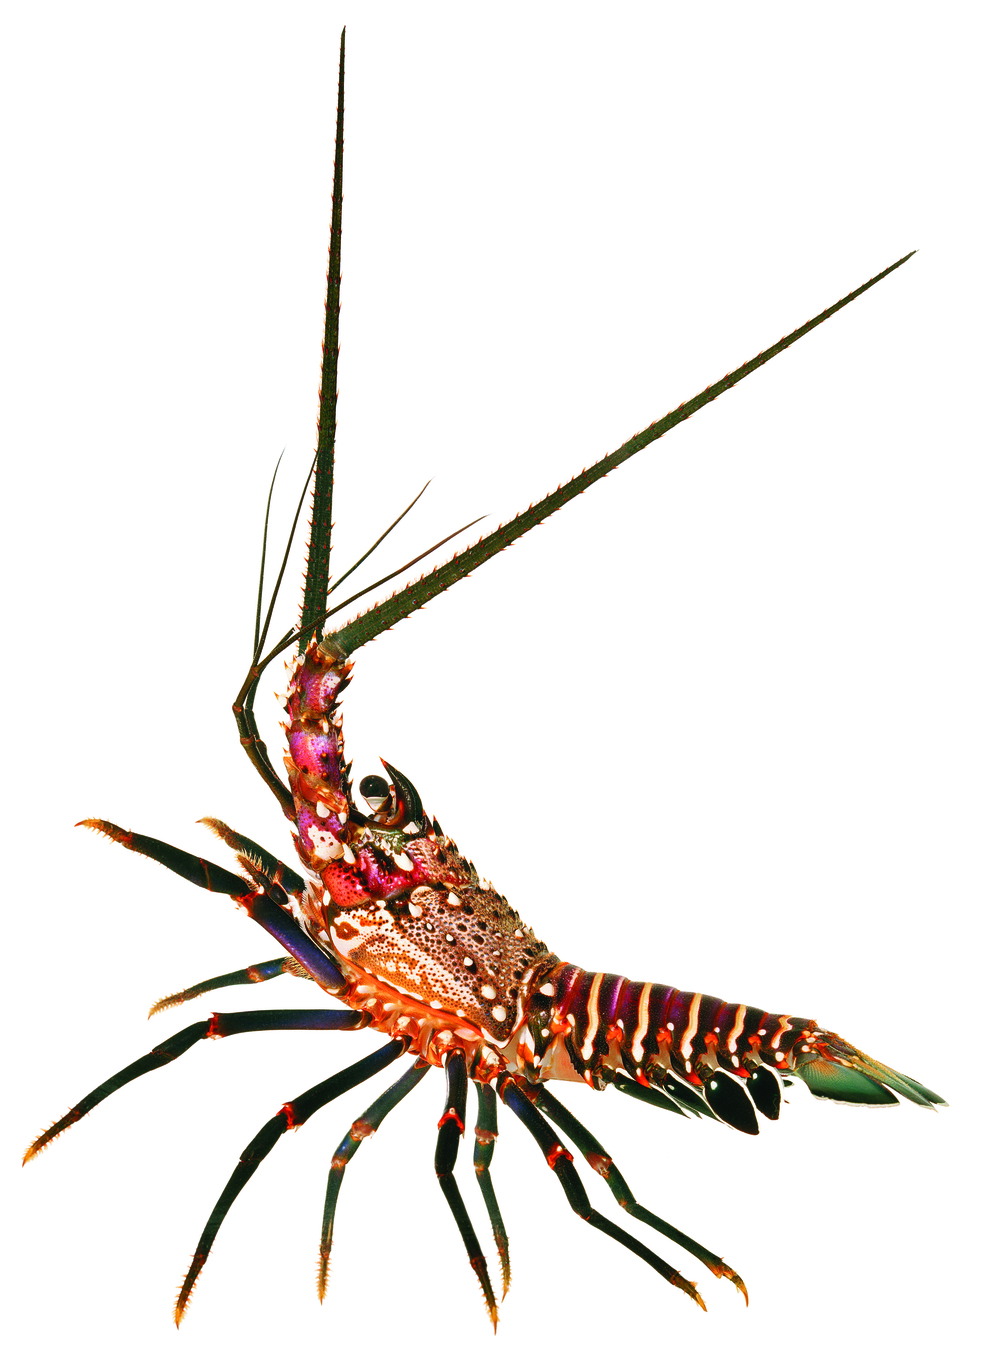 Banded Spiny Lobster